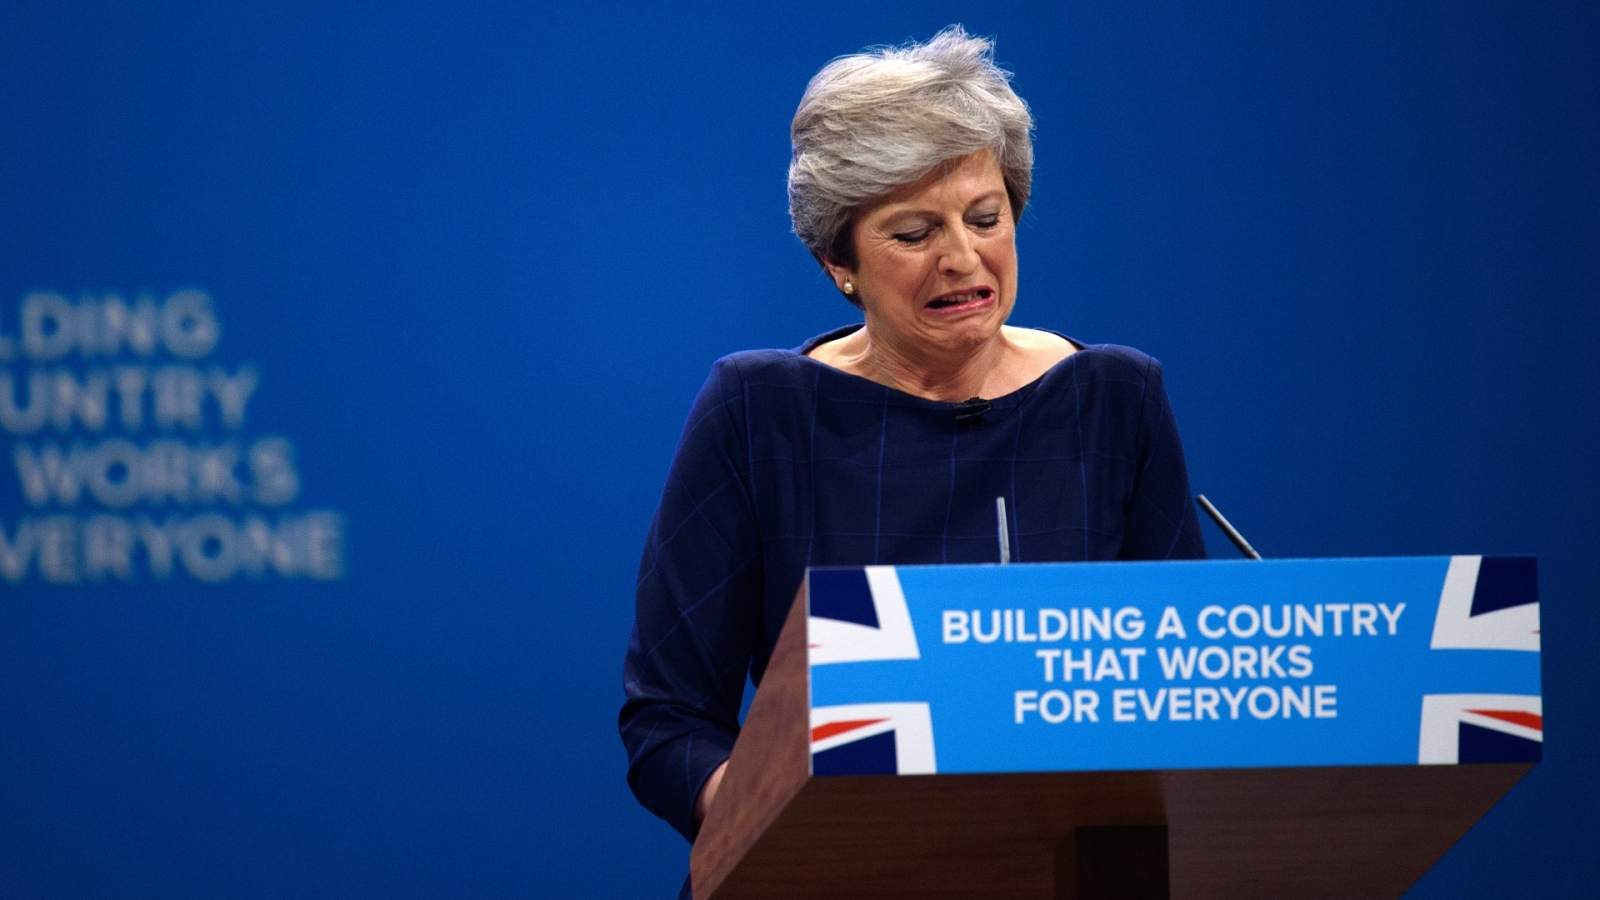 Theresa May's Calamitous Conference Speech